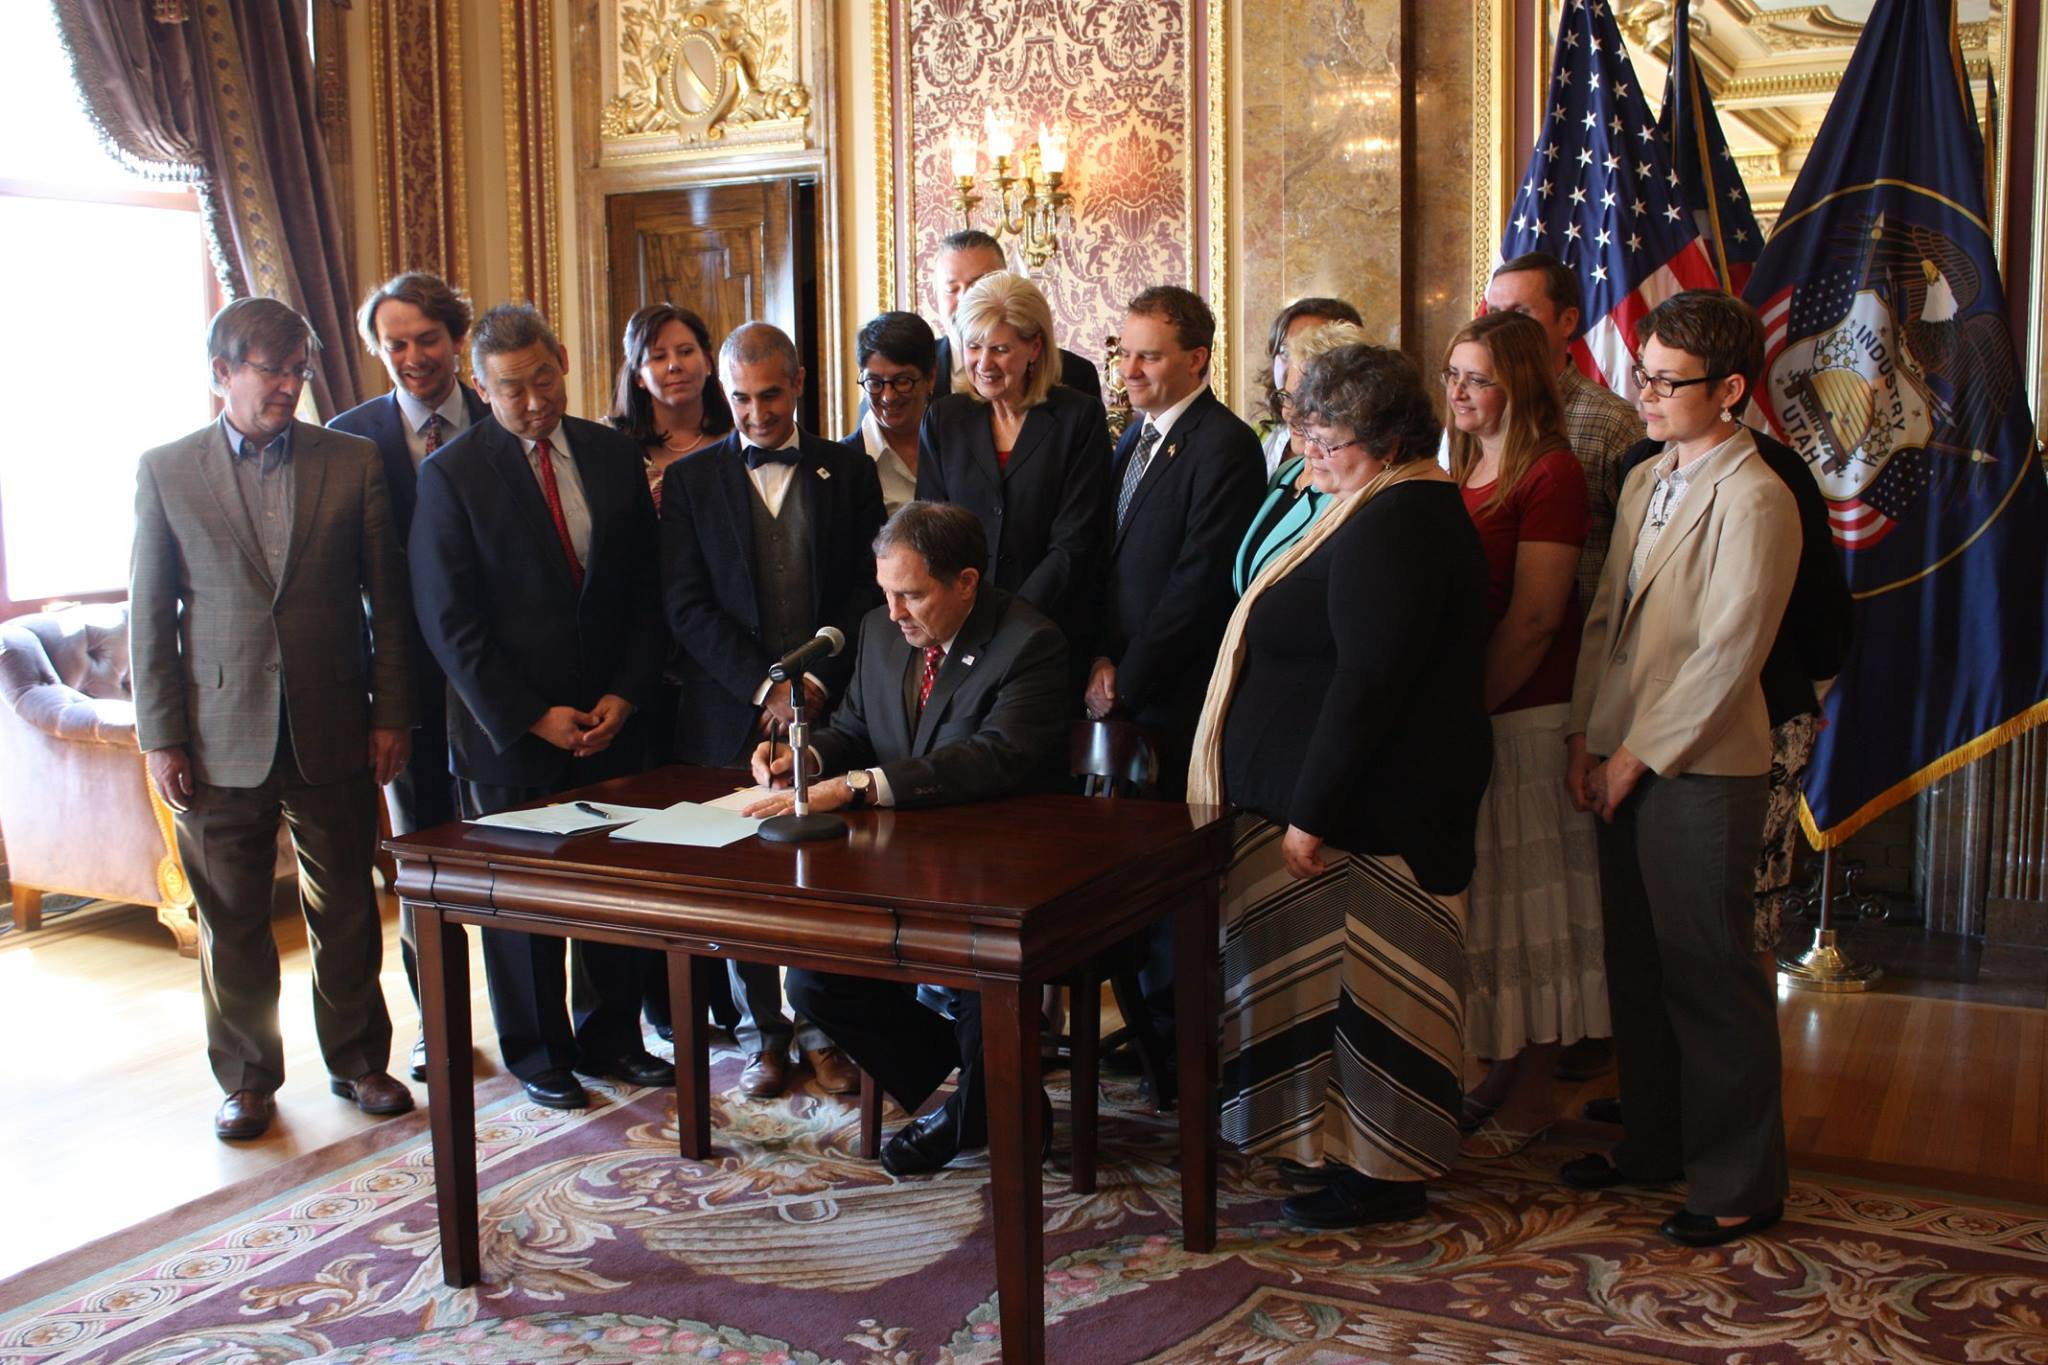 At the signing ceremony with Governor Herbert, current and former teachers of the year, Reps. Marie Poulson and Joel Briscoe, and others at the signing ceremony for HB200 and HB201.